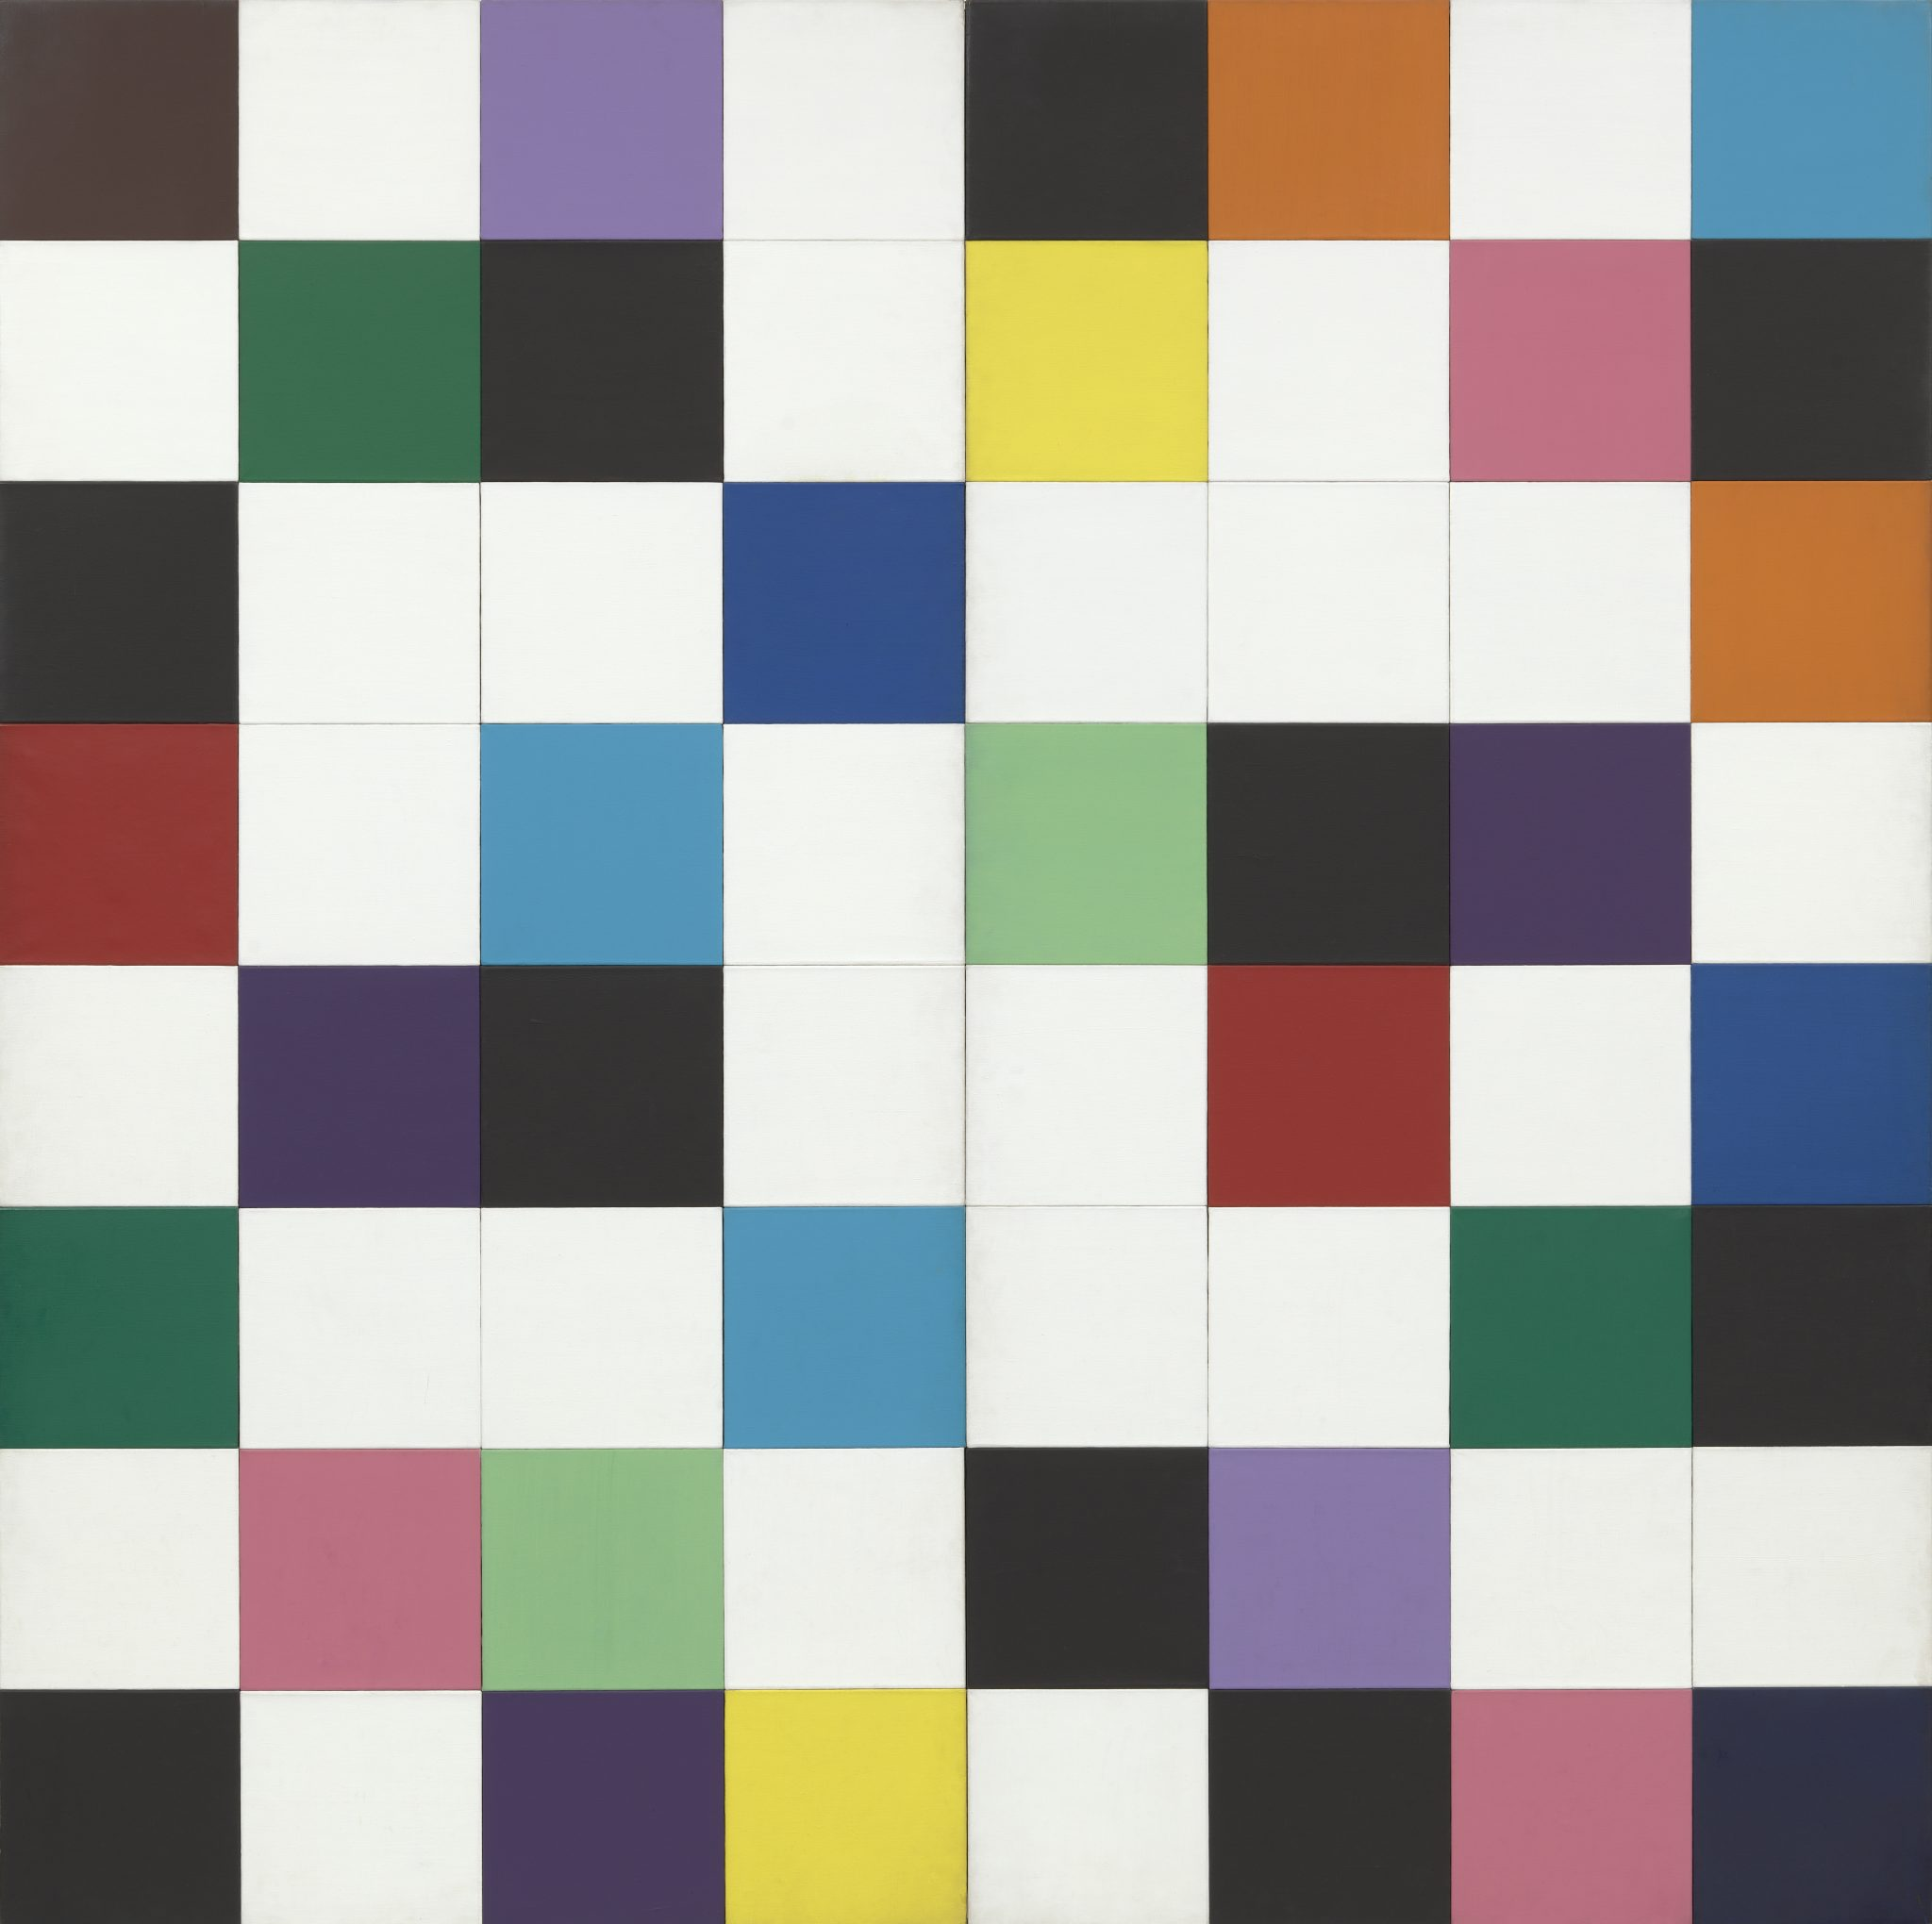 Ellsworth Kelly (American, 1923–2015) Colors for a Large Wall 1951 Oil on canvas, sixty-four panels The Museum of Modern Art, New York Gift of the artist, 1969. © 2017 Ellsworth Kelly FAD magazine